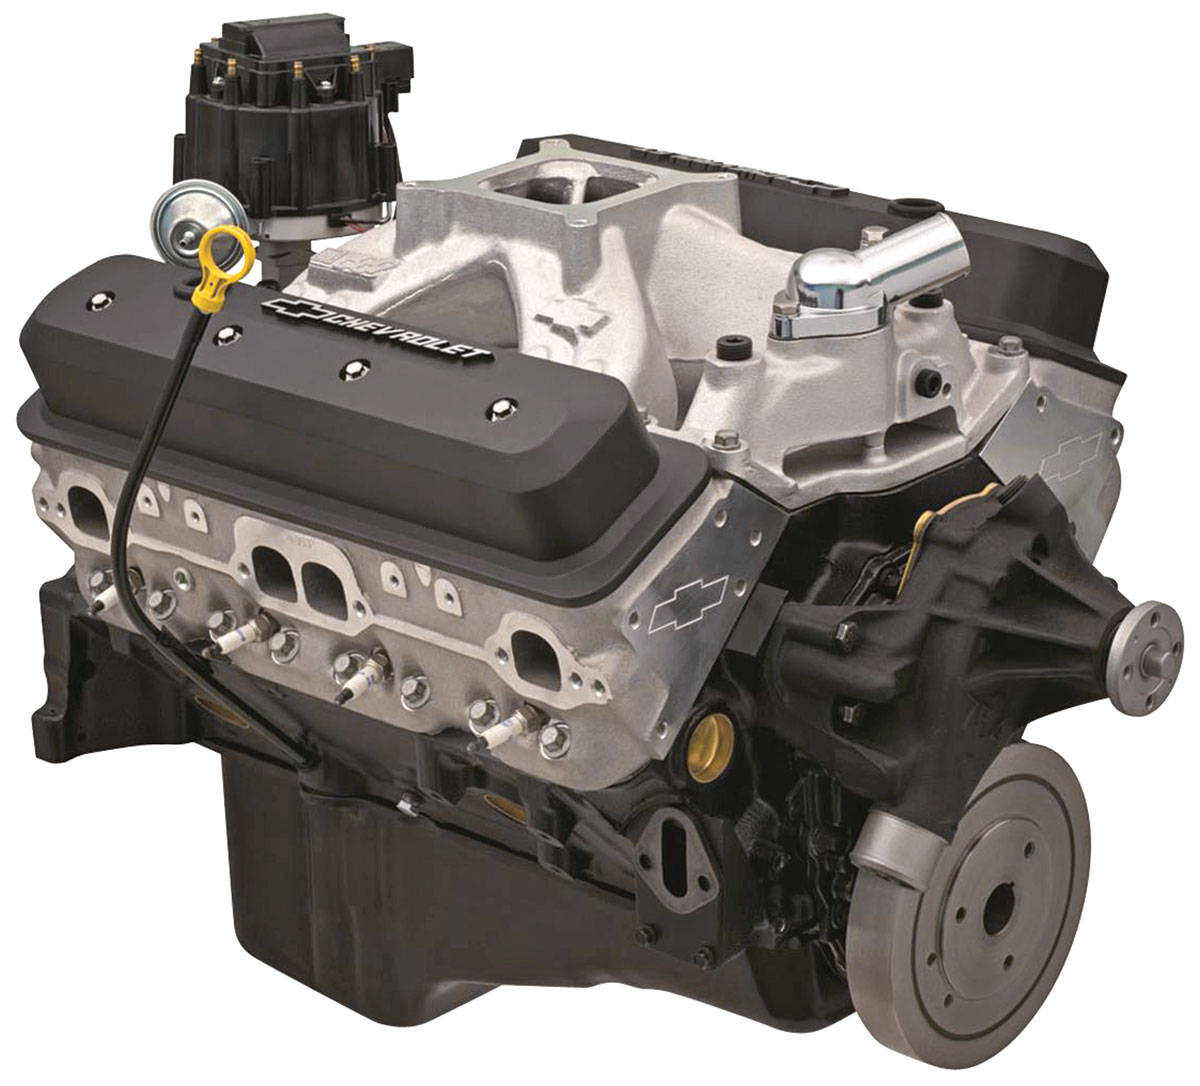 Photo of El Camino Crate Engine, ZZ6 350 base